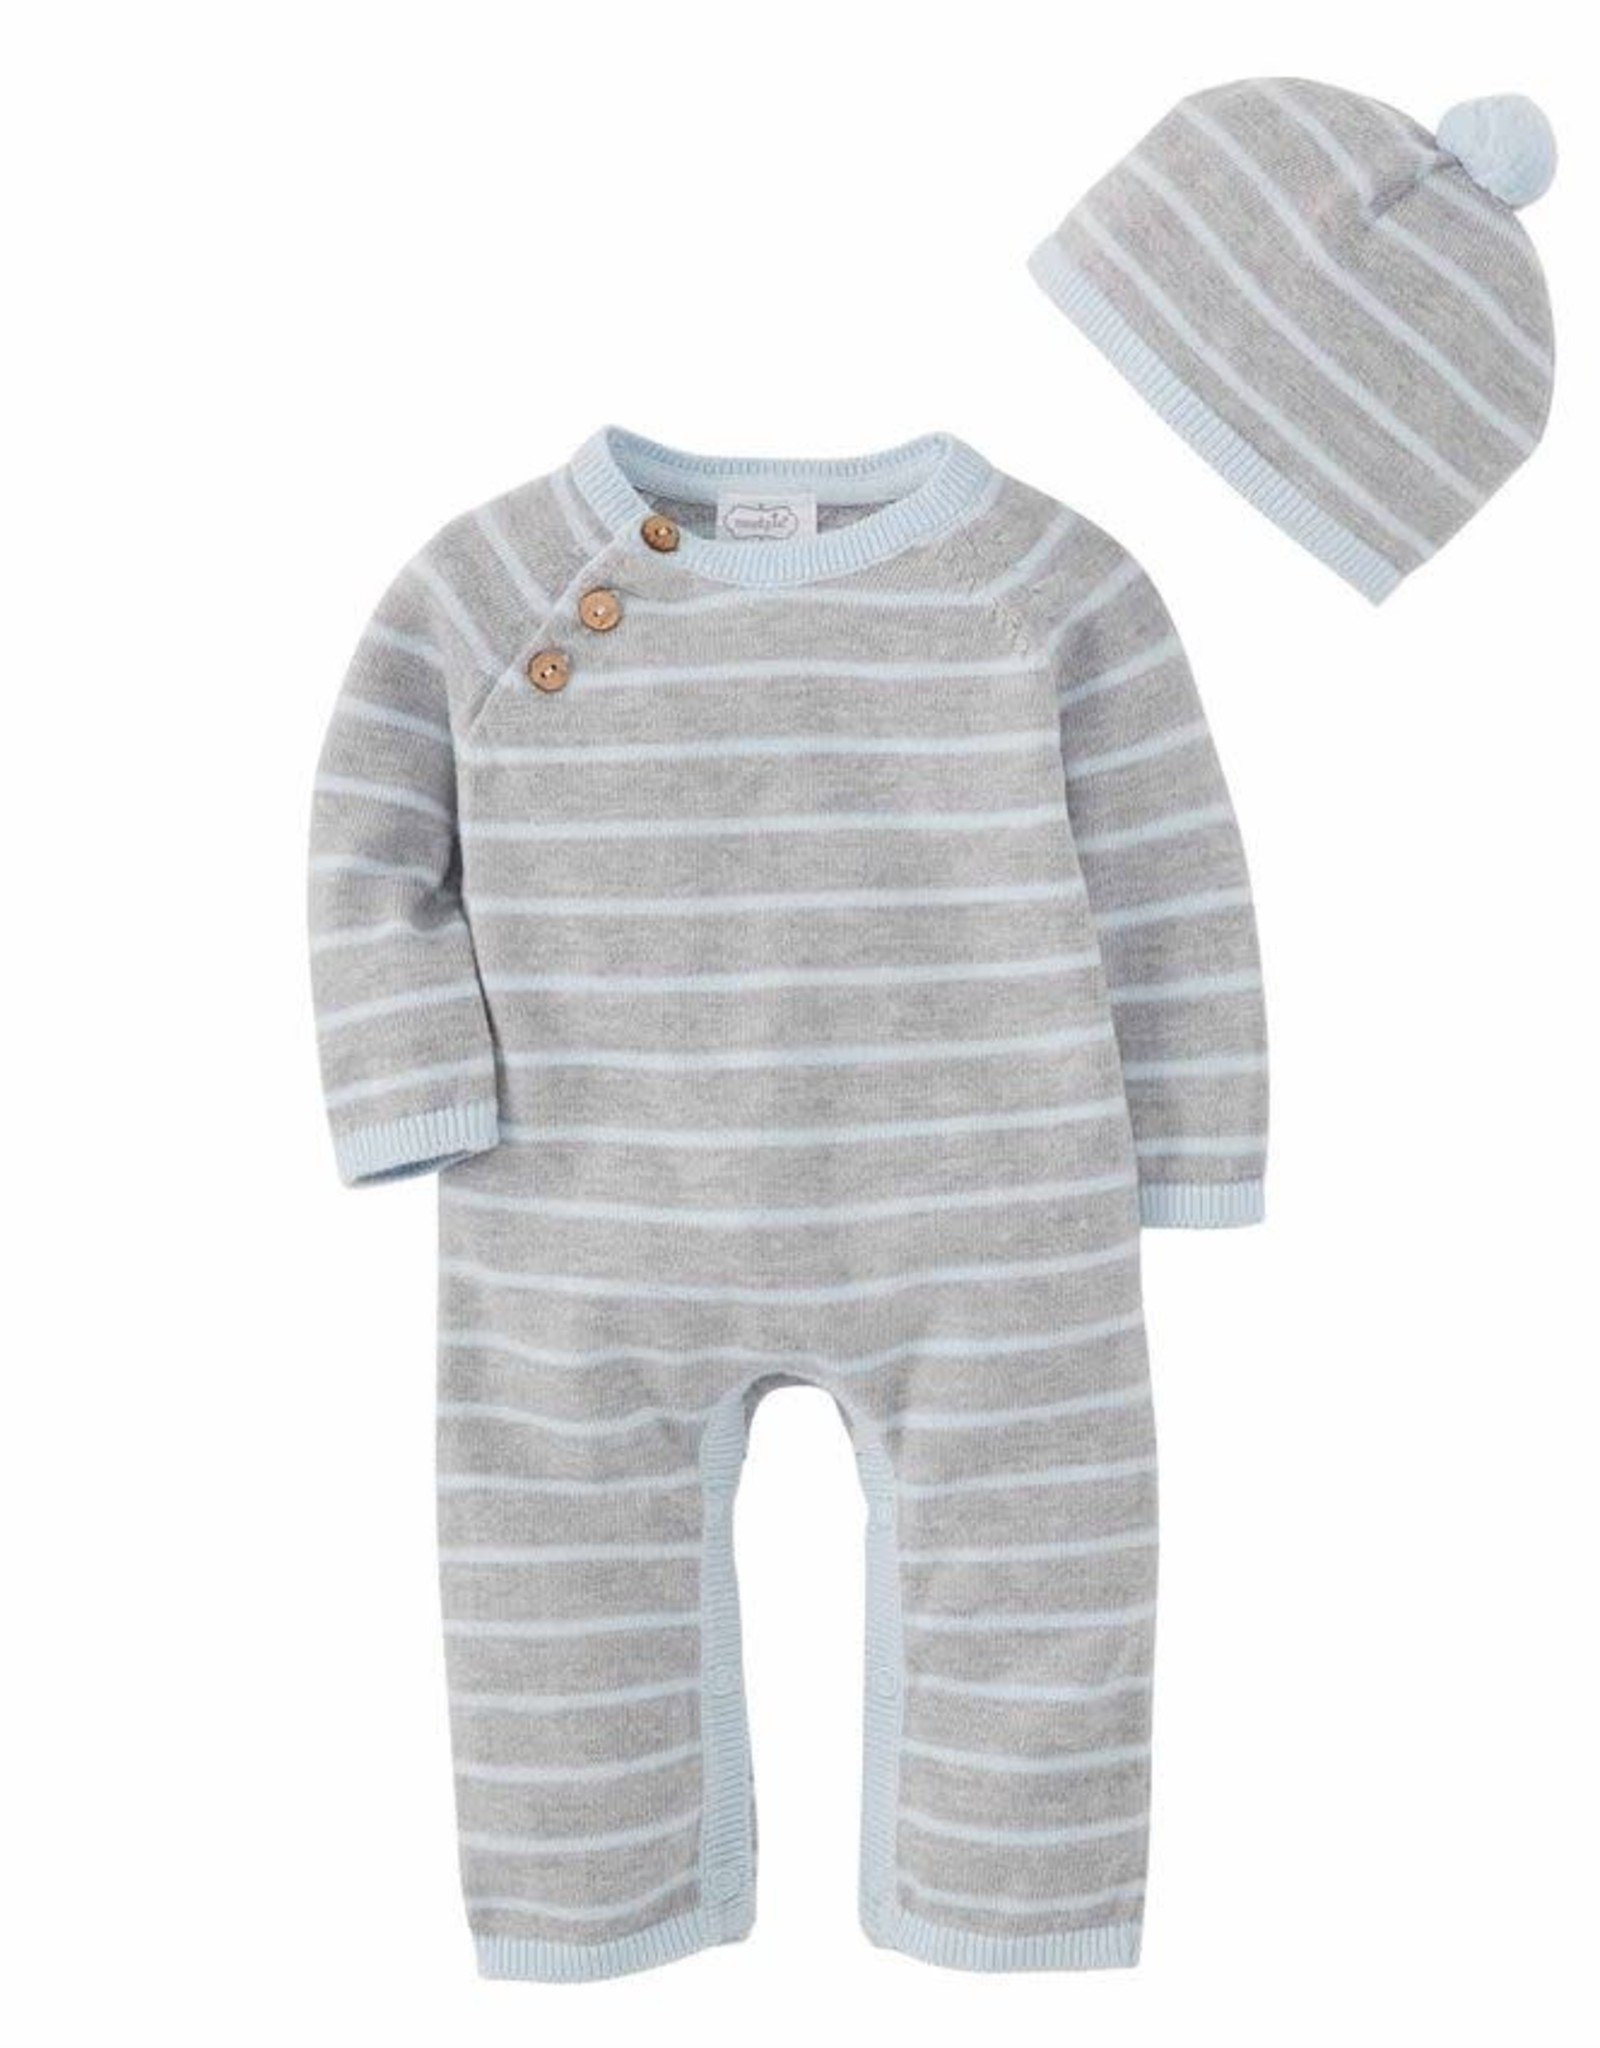 Blue and Gray Knitted Set